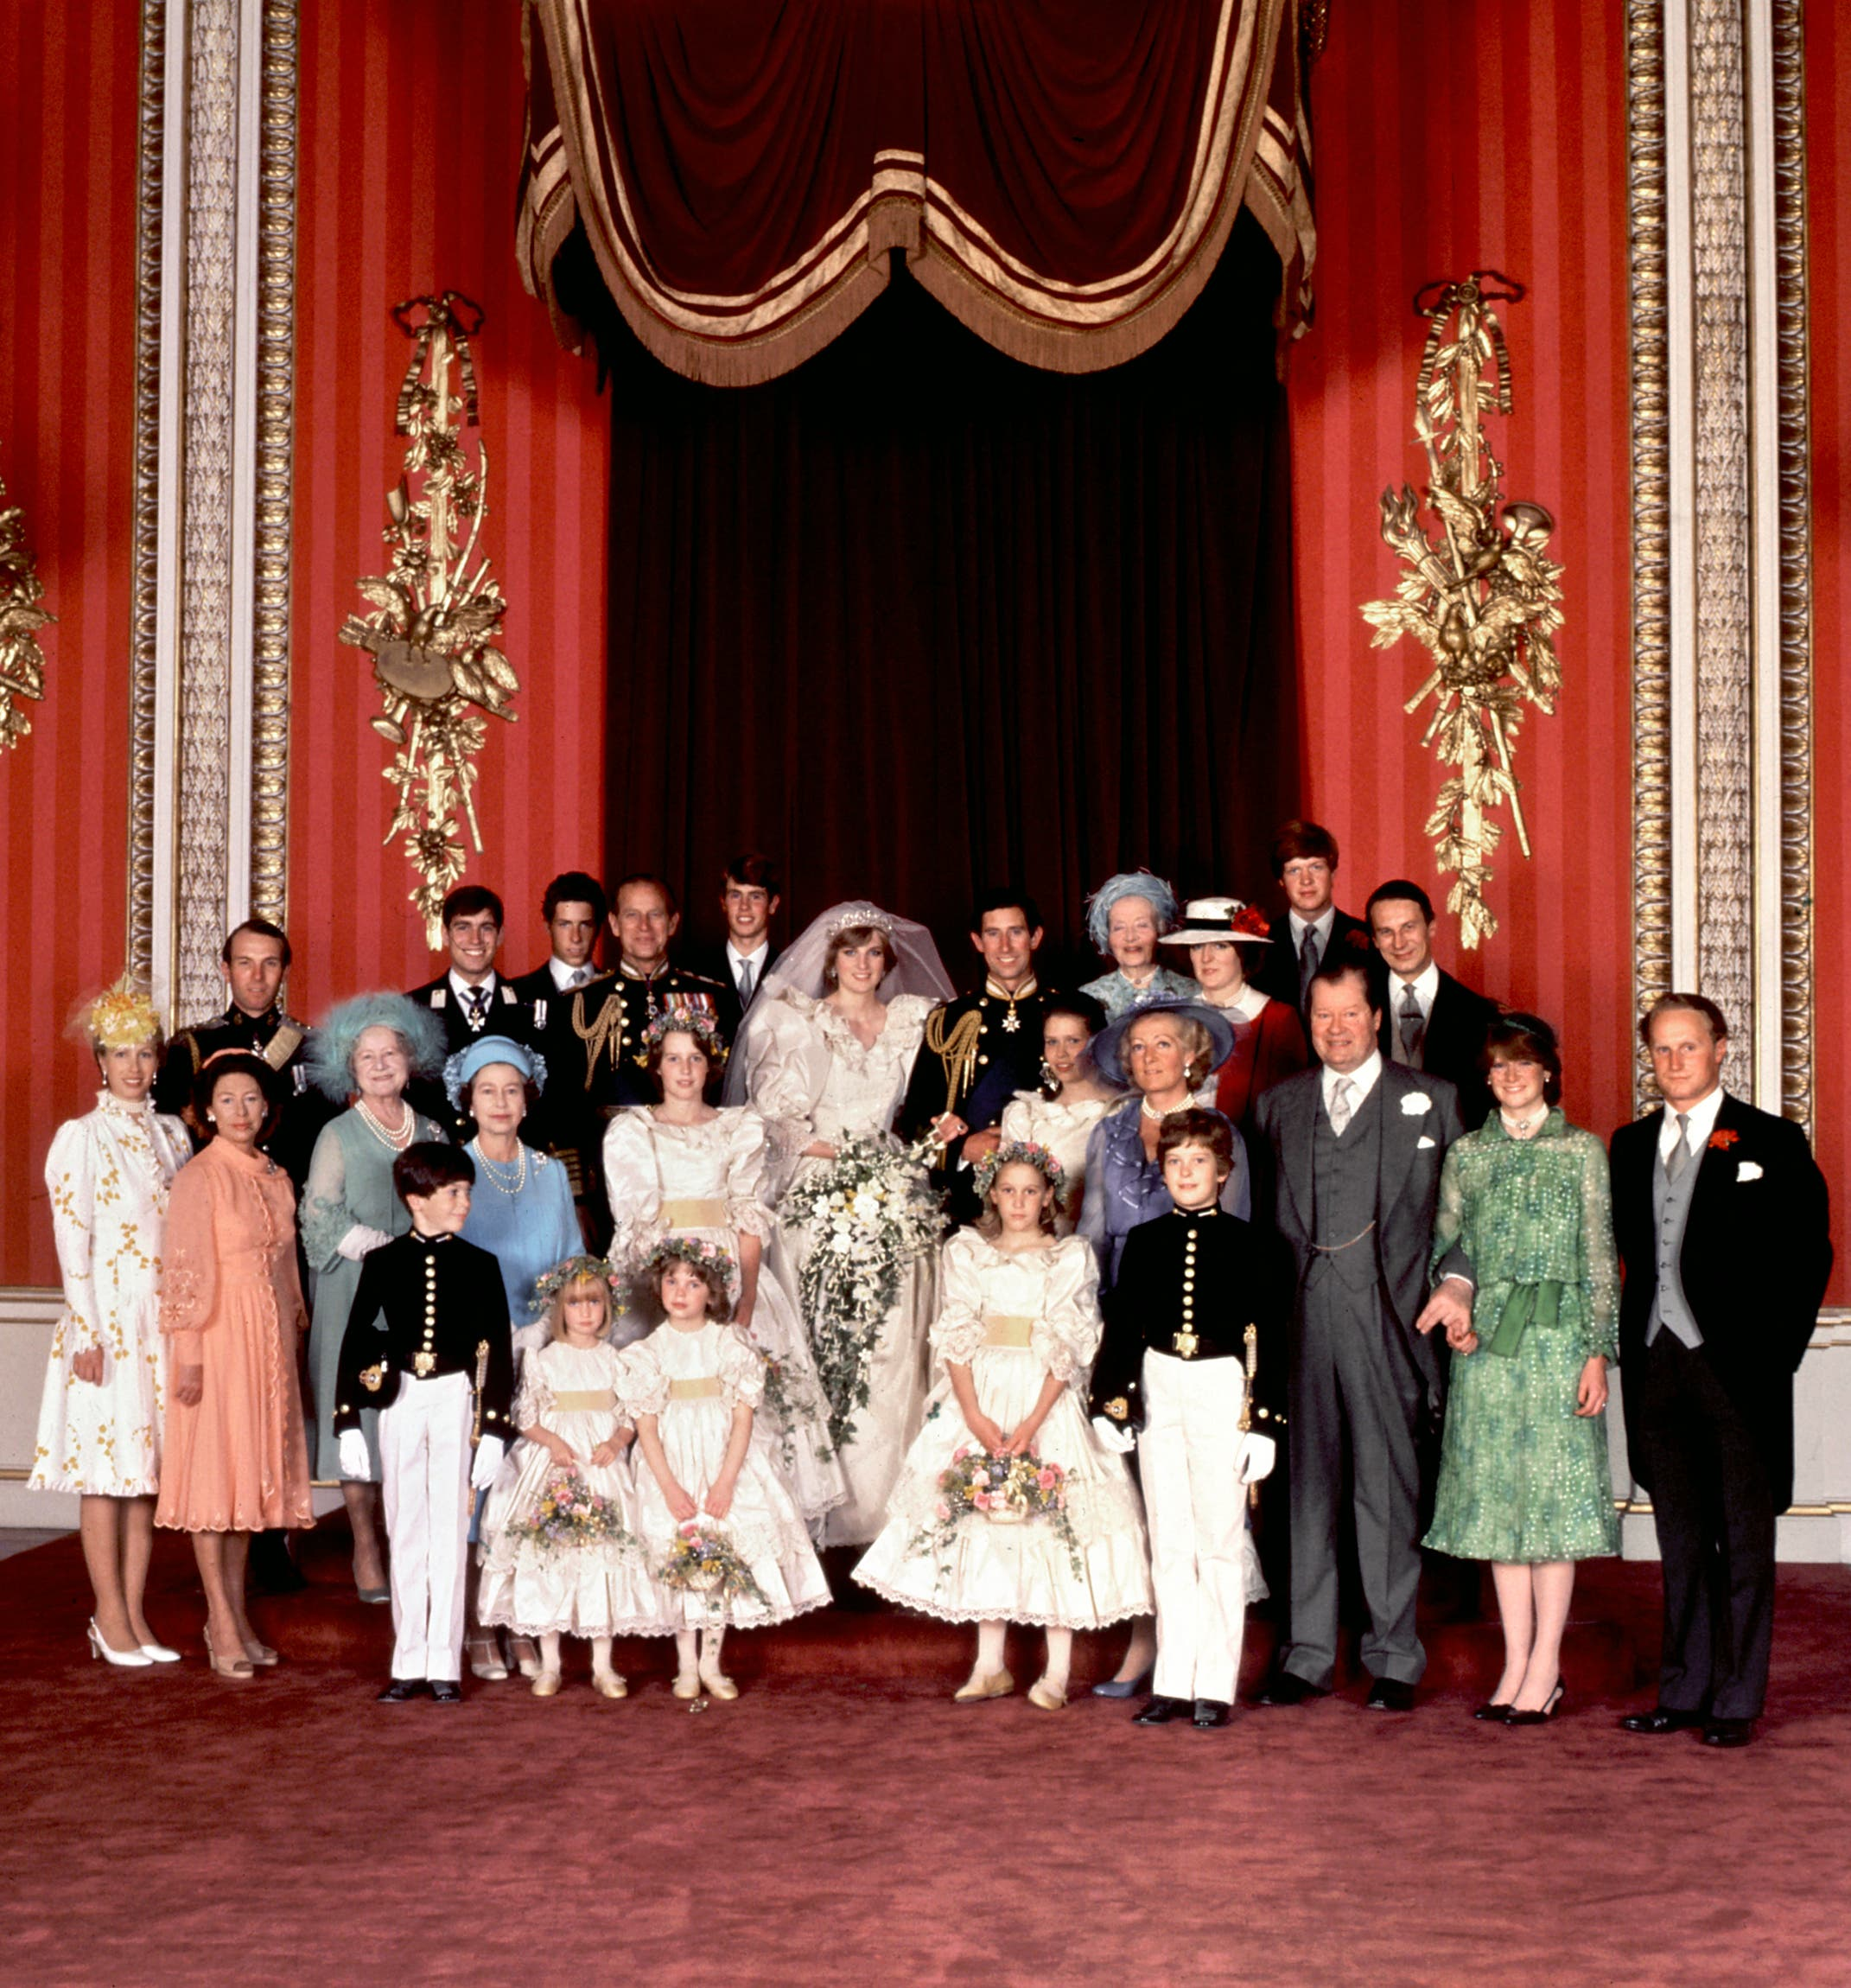 An official family photo taken on 29 July 1981, the wedding day of Prince Charles (C-R) and Lady Diana (C-L), the Princess of Wales. (AFP)